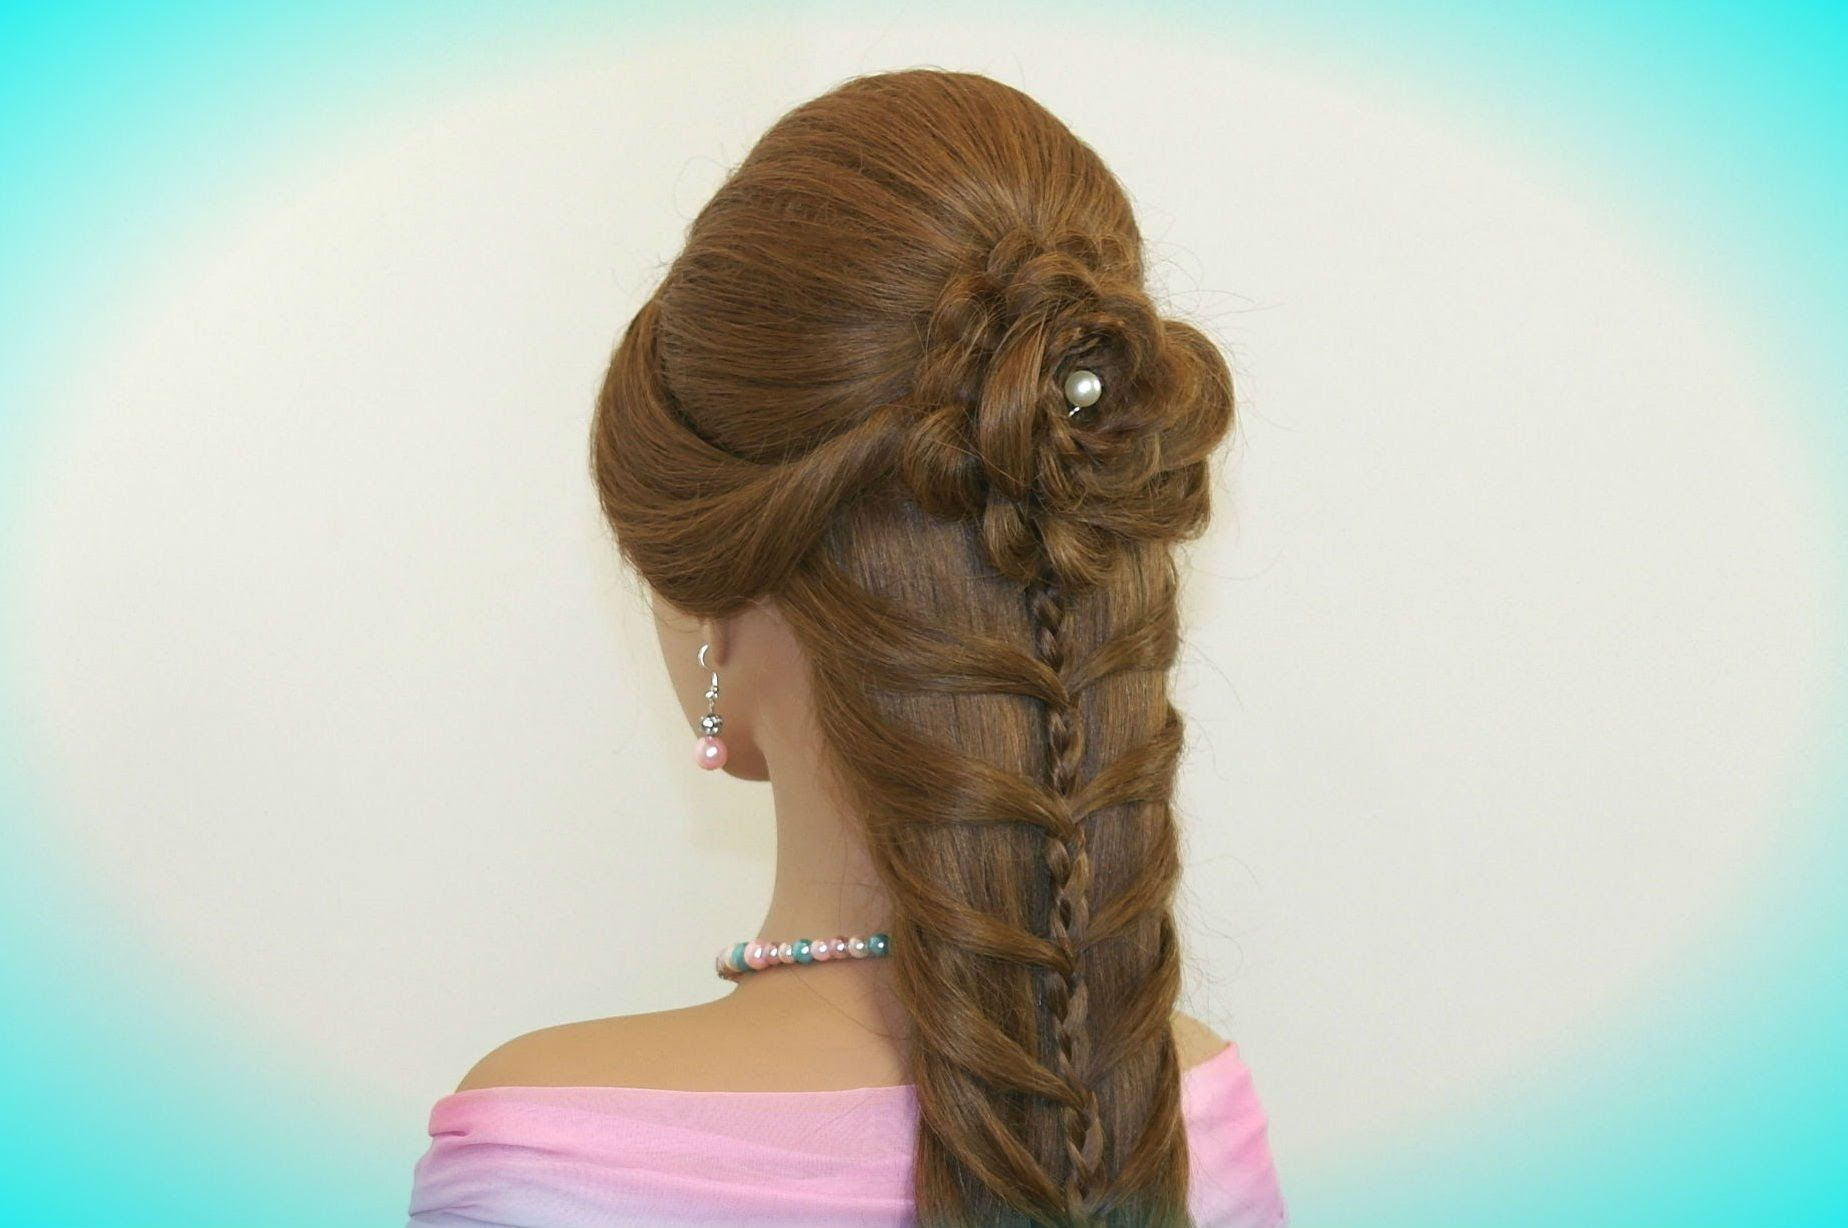 cute prom braided hairstyles for long hair. hair made rose